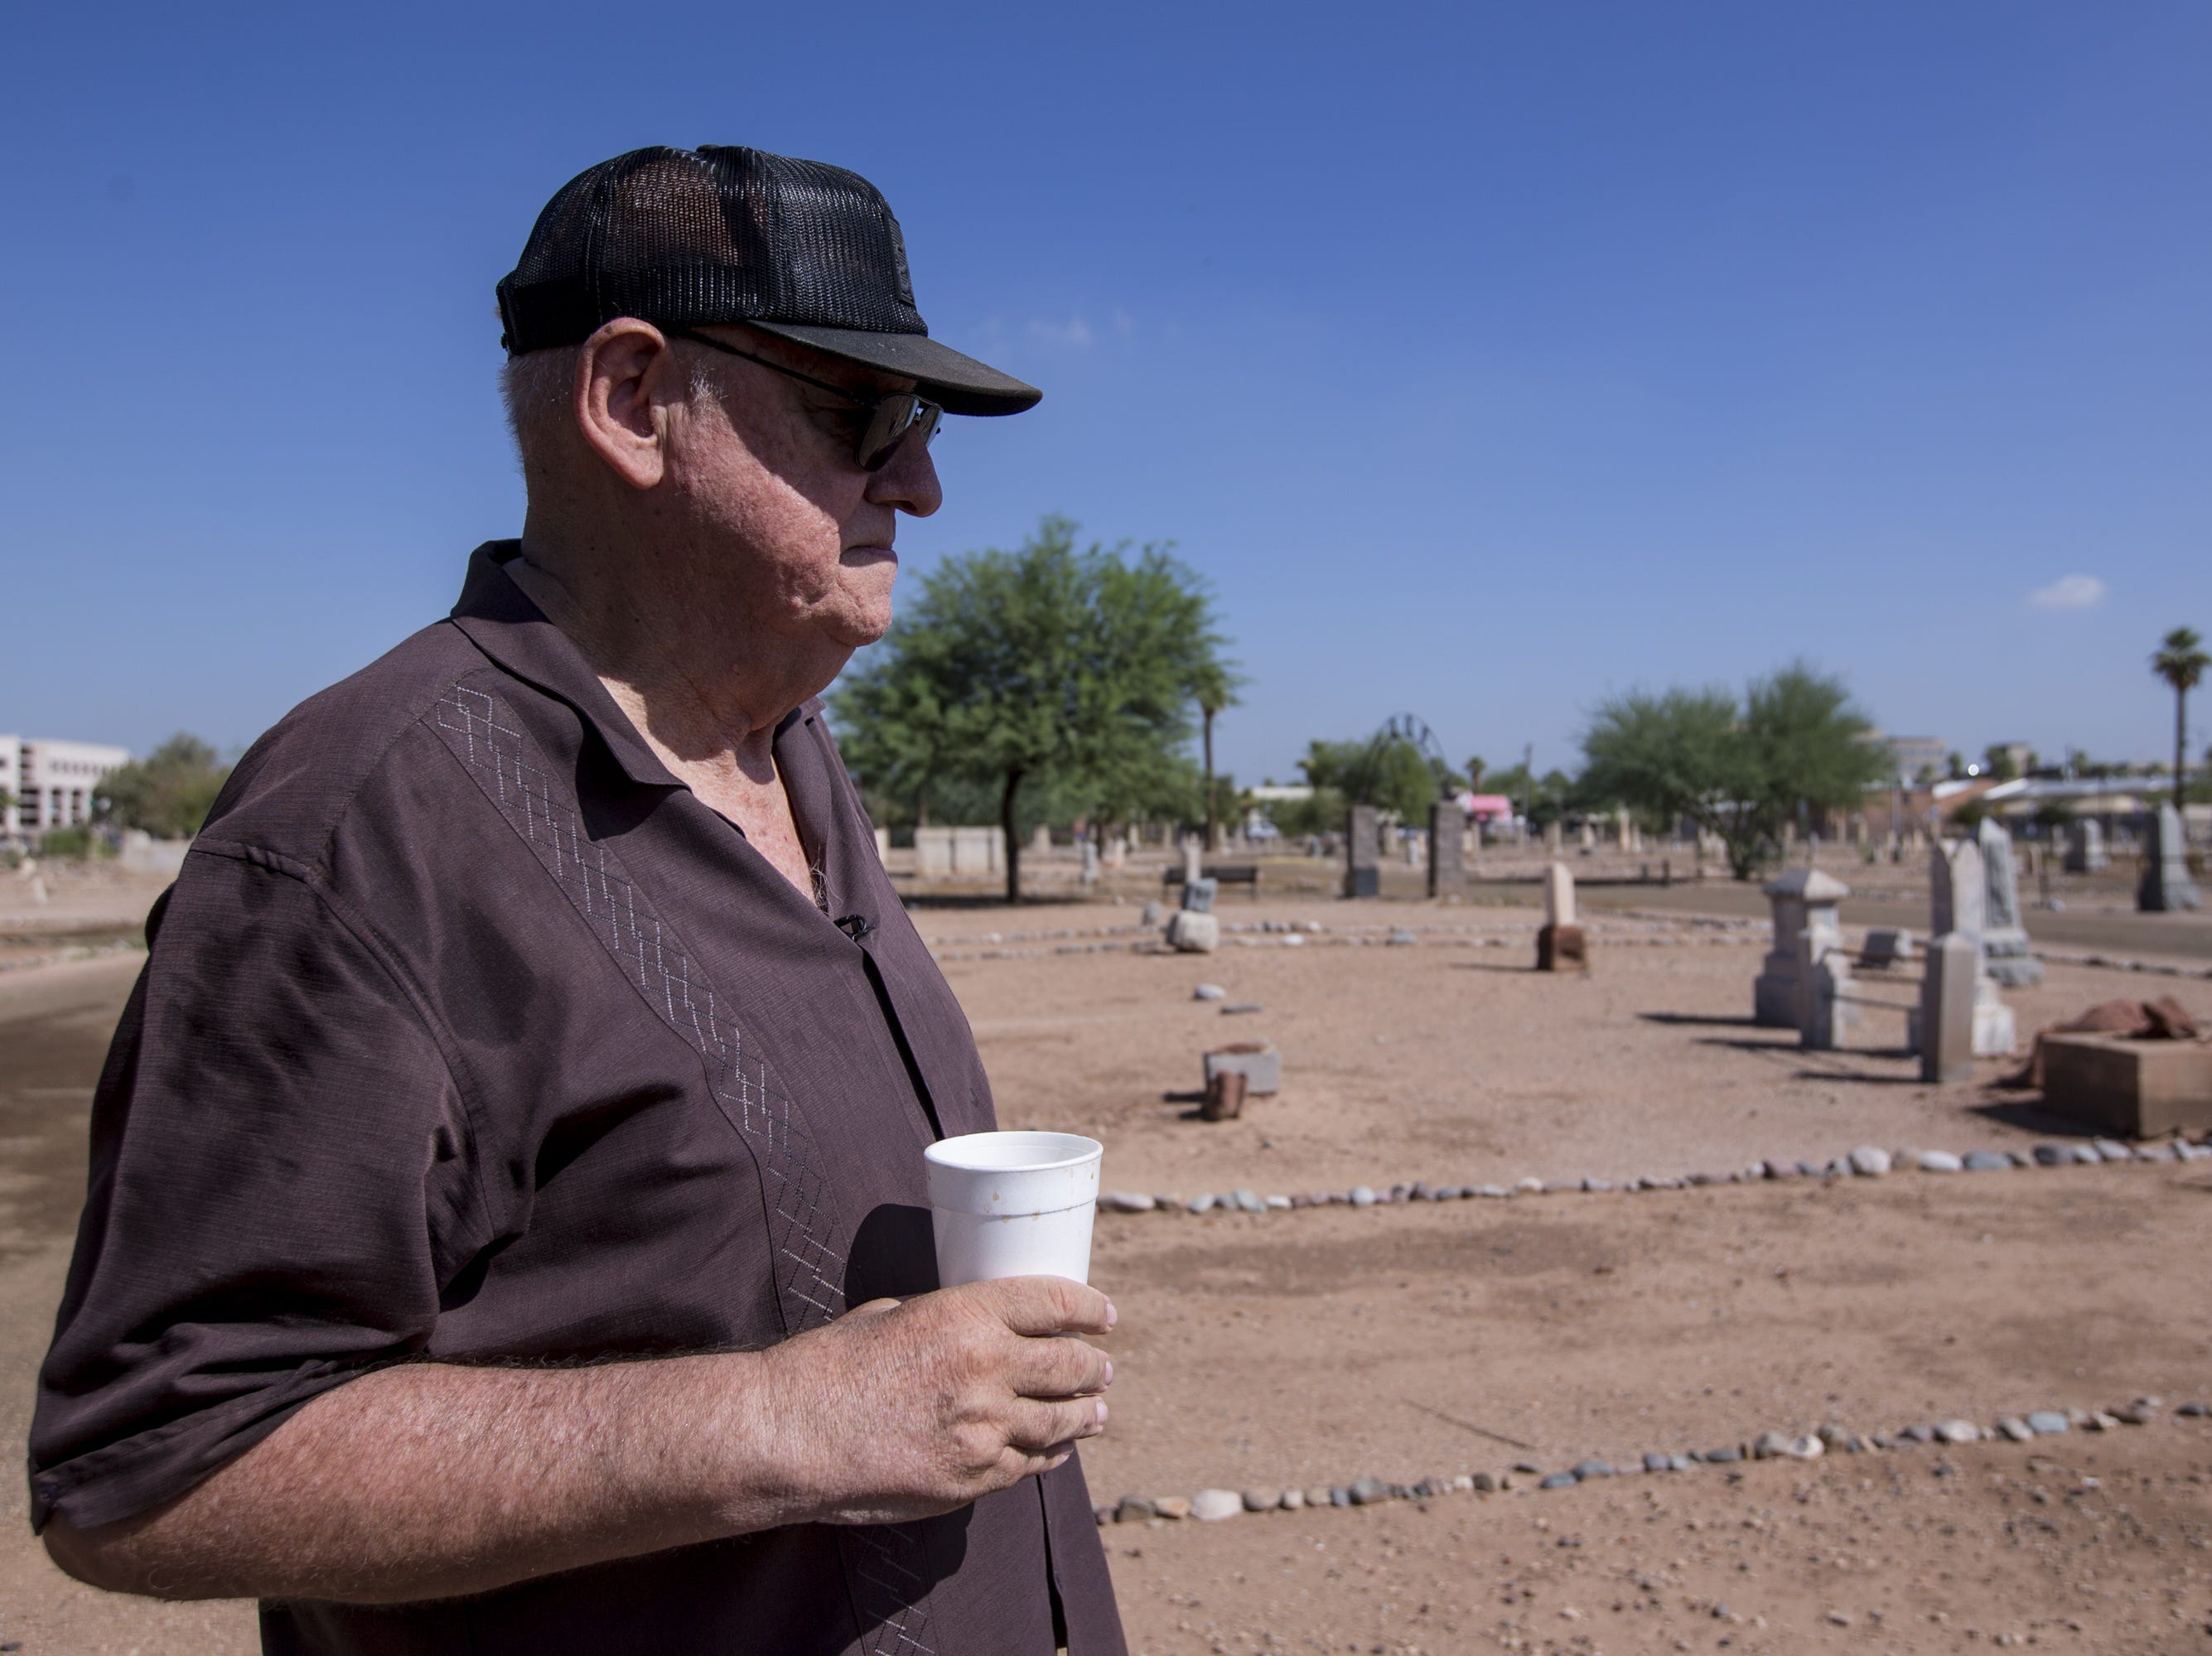 Frank Barrios is pictured on Sept. 20, 2018, at Pioneer & Military Memorial Park in Phoenix. Some of the headstones from the historic Sotelo-Heard Cemetery have been moved to their current location to prevent vandalism.